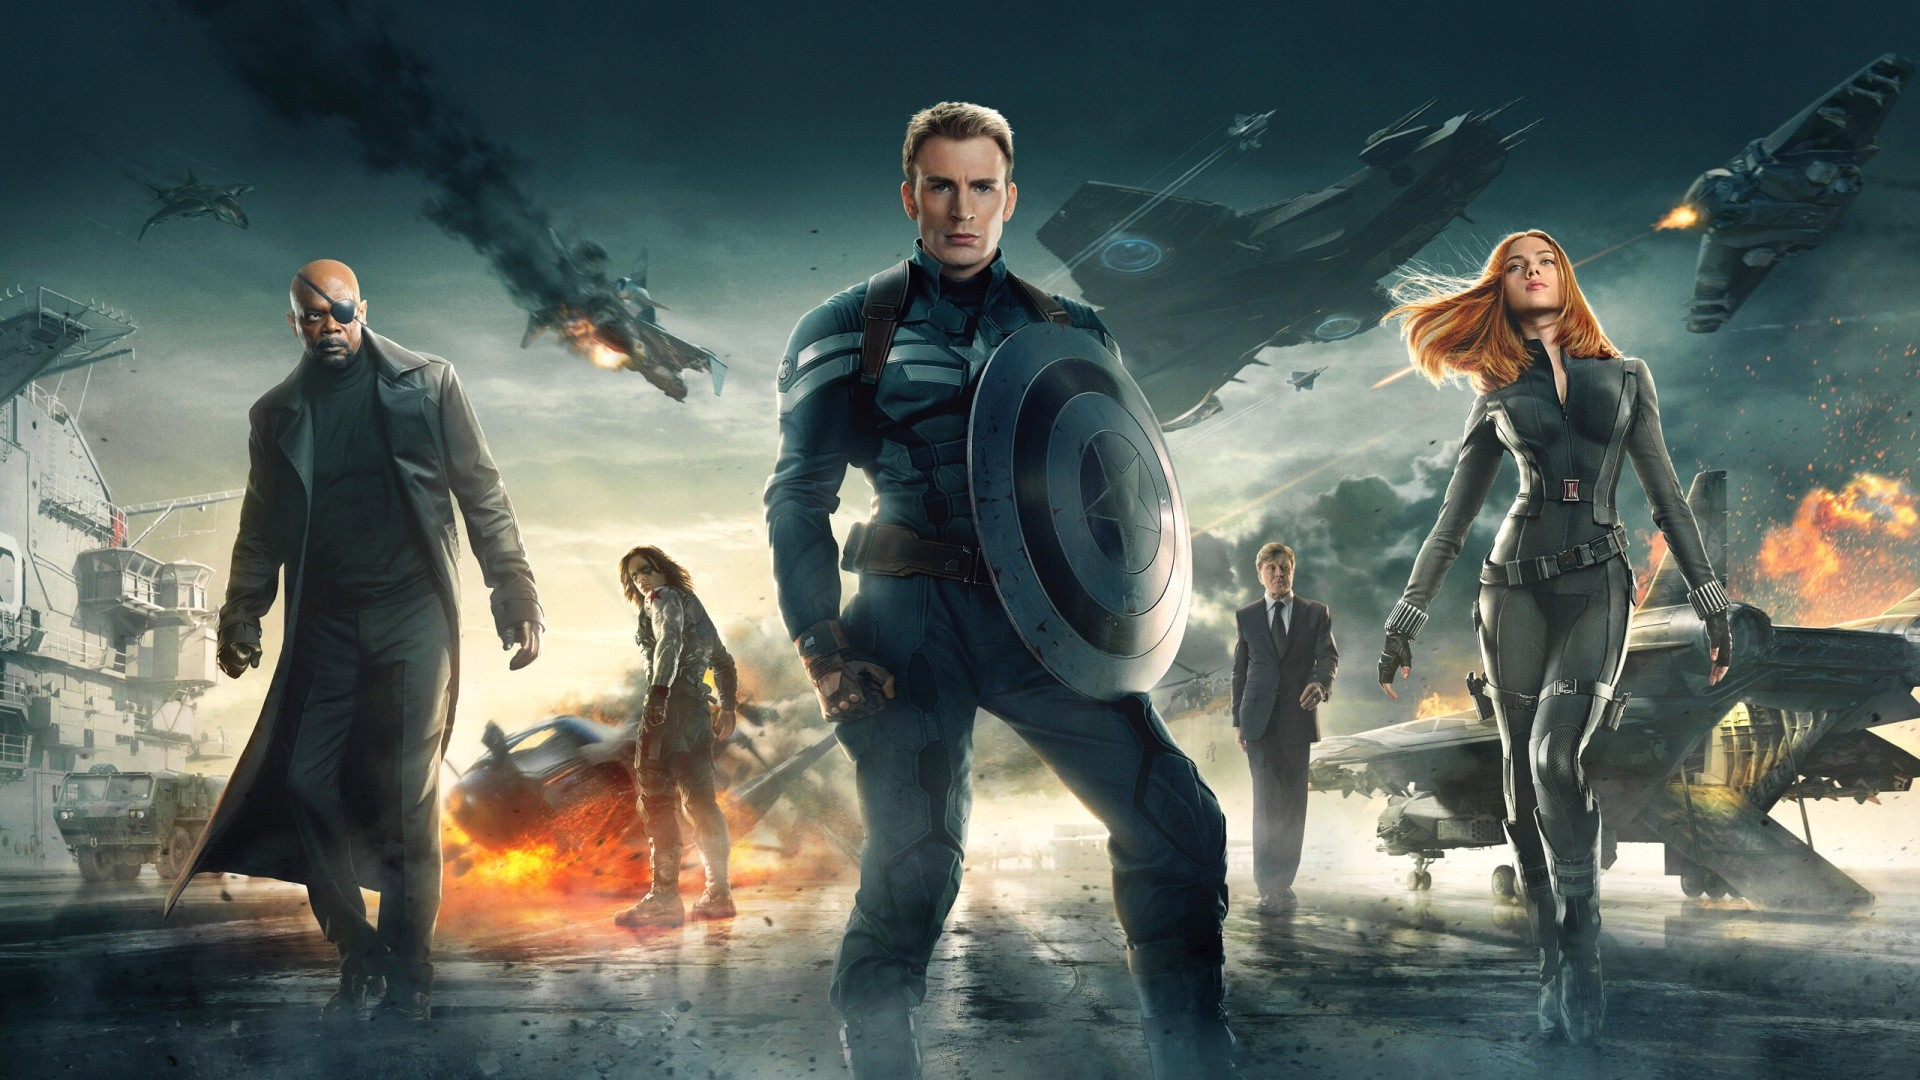 Marvel Live-action Movies images captain america winter soldier HD wallpaper  and background photos